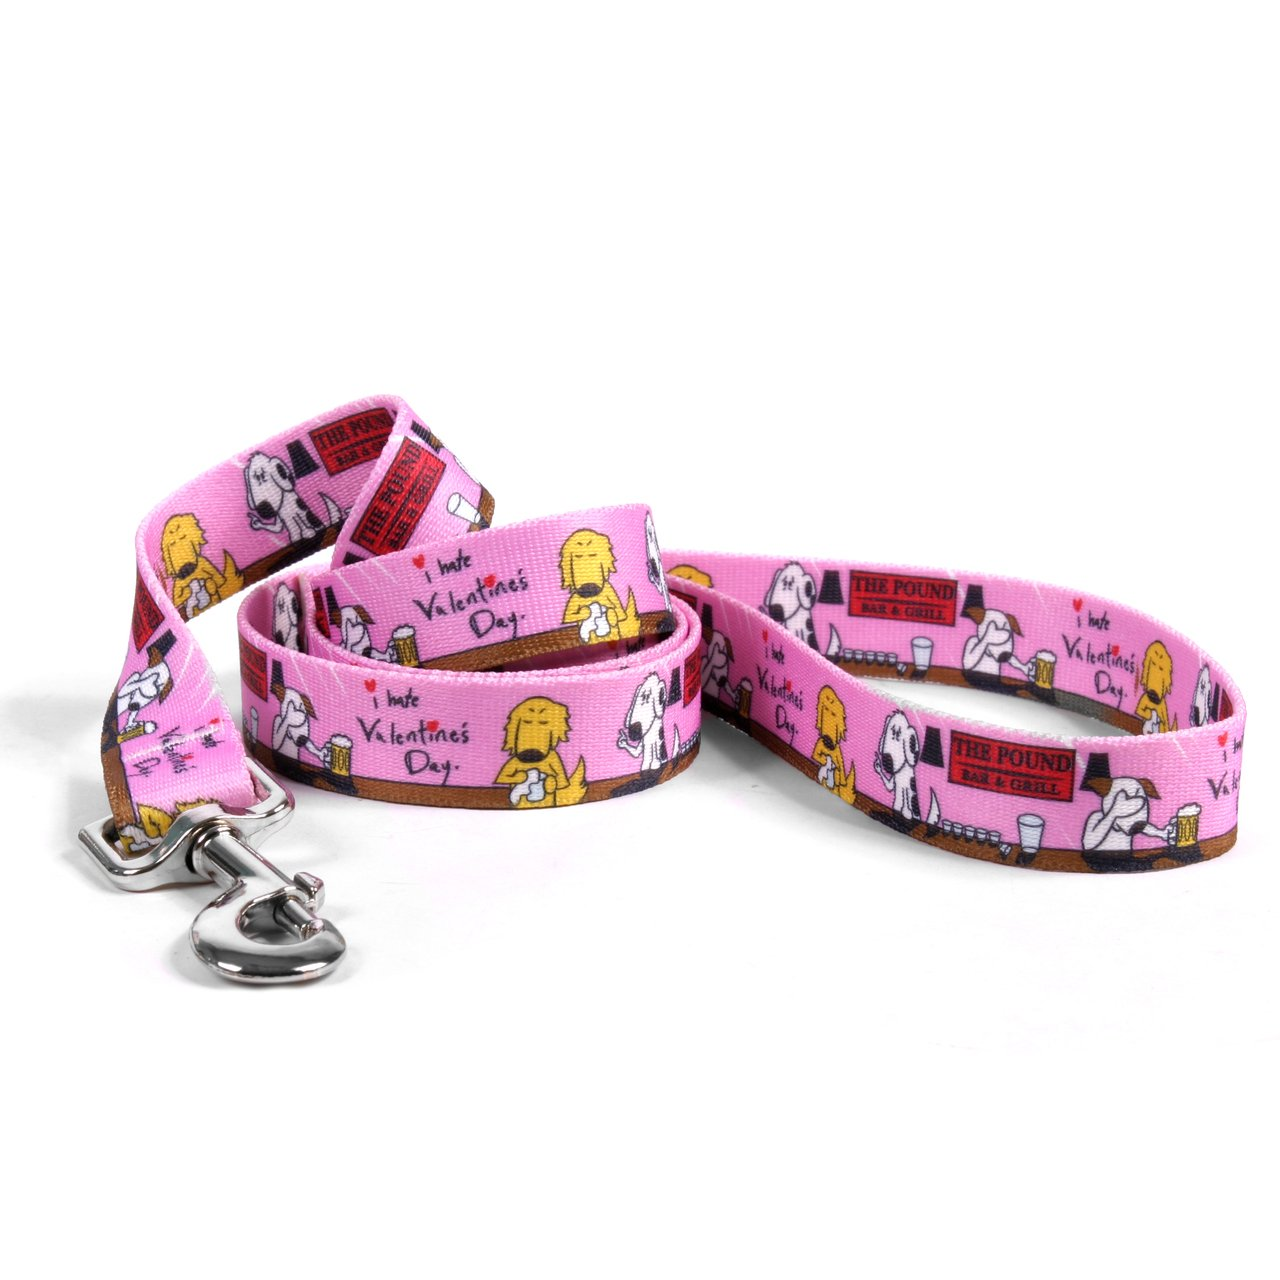 Yellow Dog Design, I Hate Valentine's Day Dog Leash, Extra Small 3/8'' x 60'' (5 ft.) by Yellow Dog Design